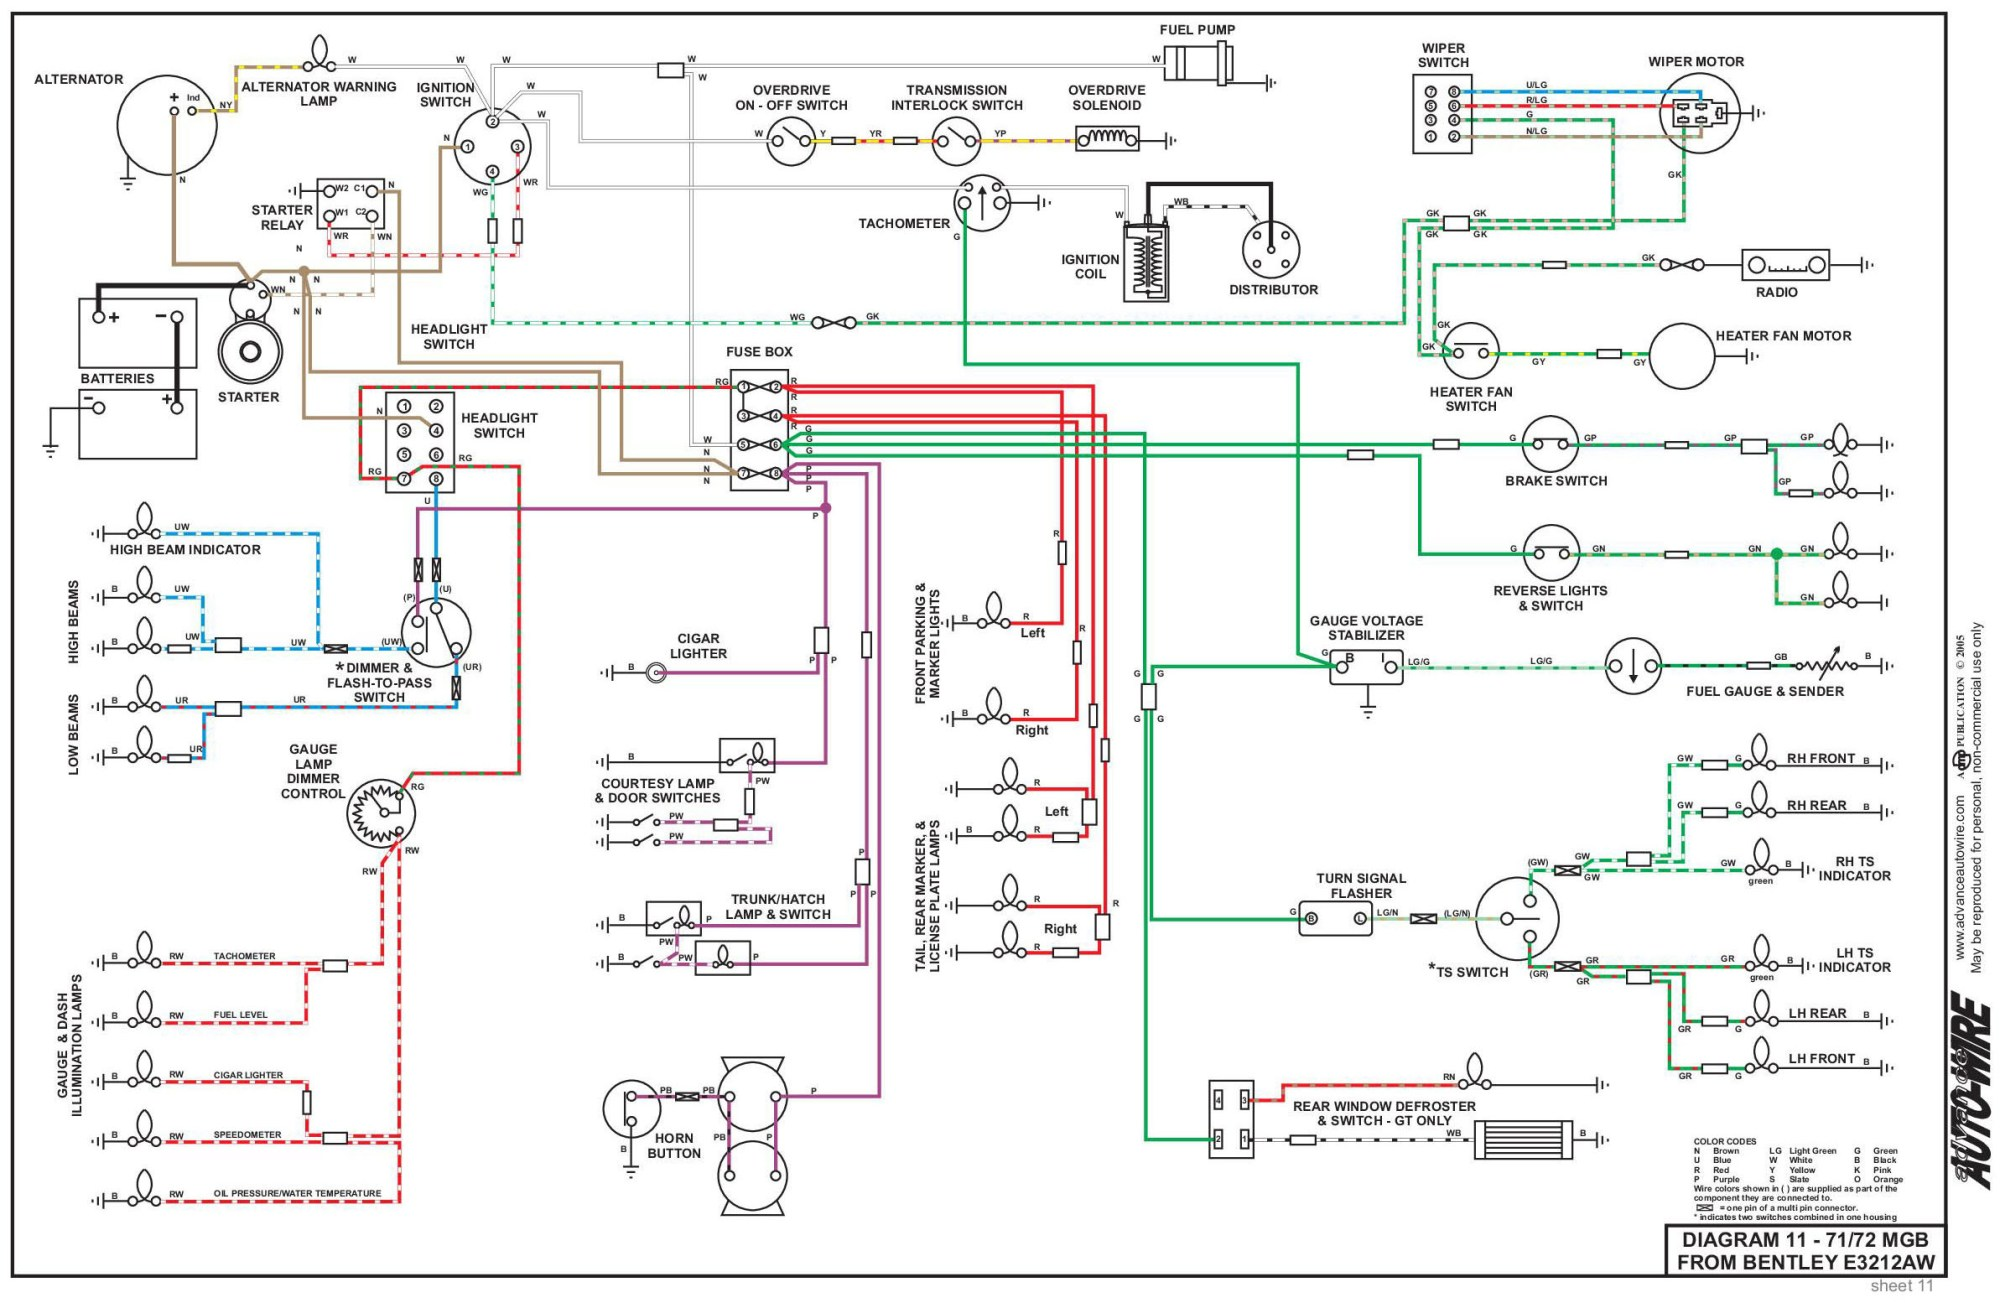 hight resolution of electrical system 72 mgb wiring diagram